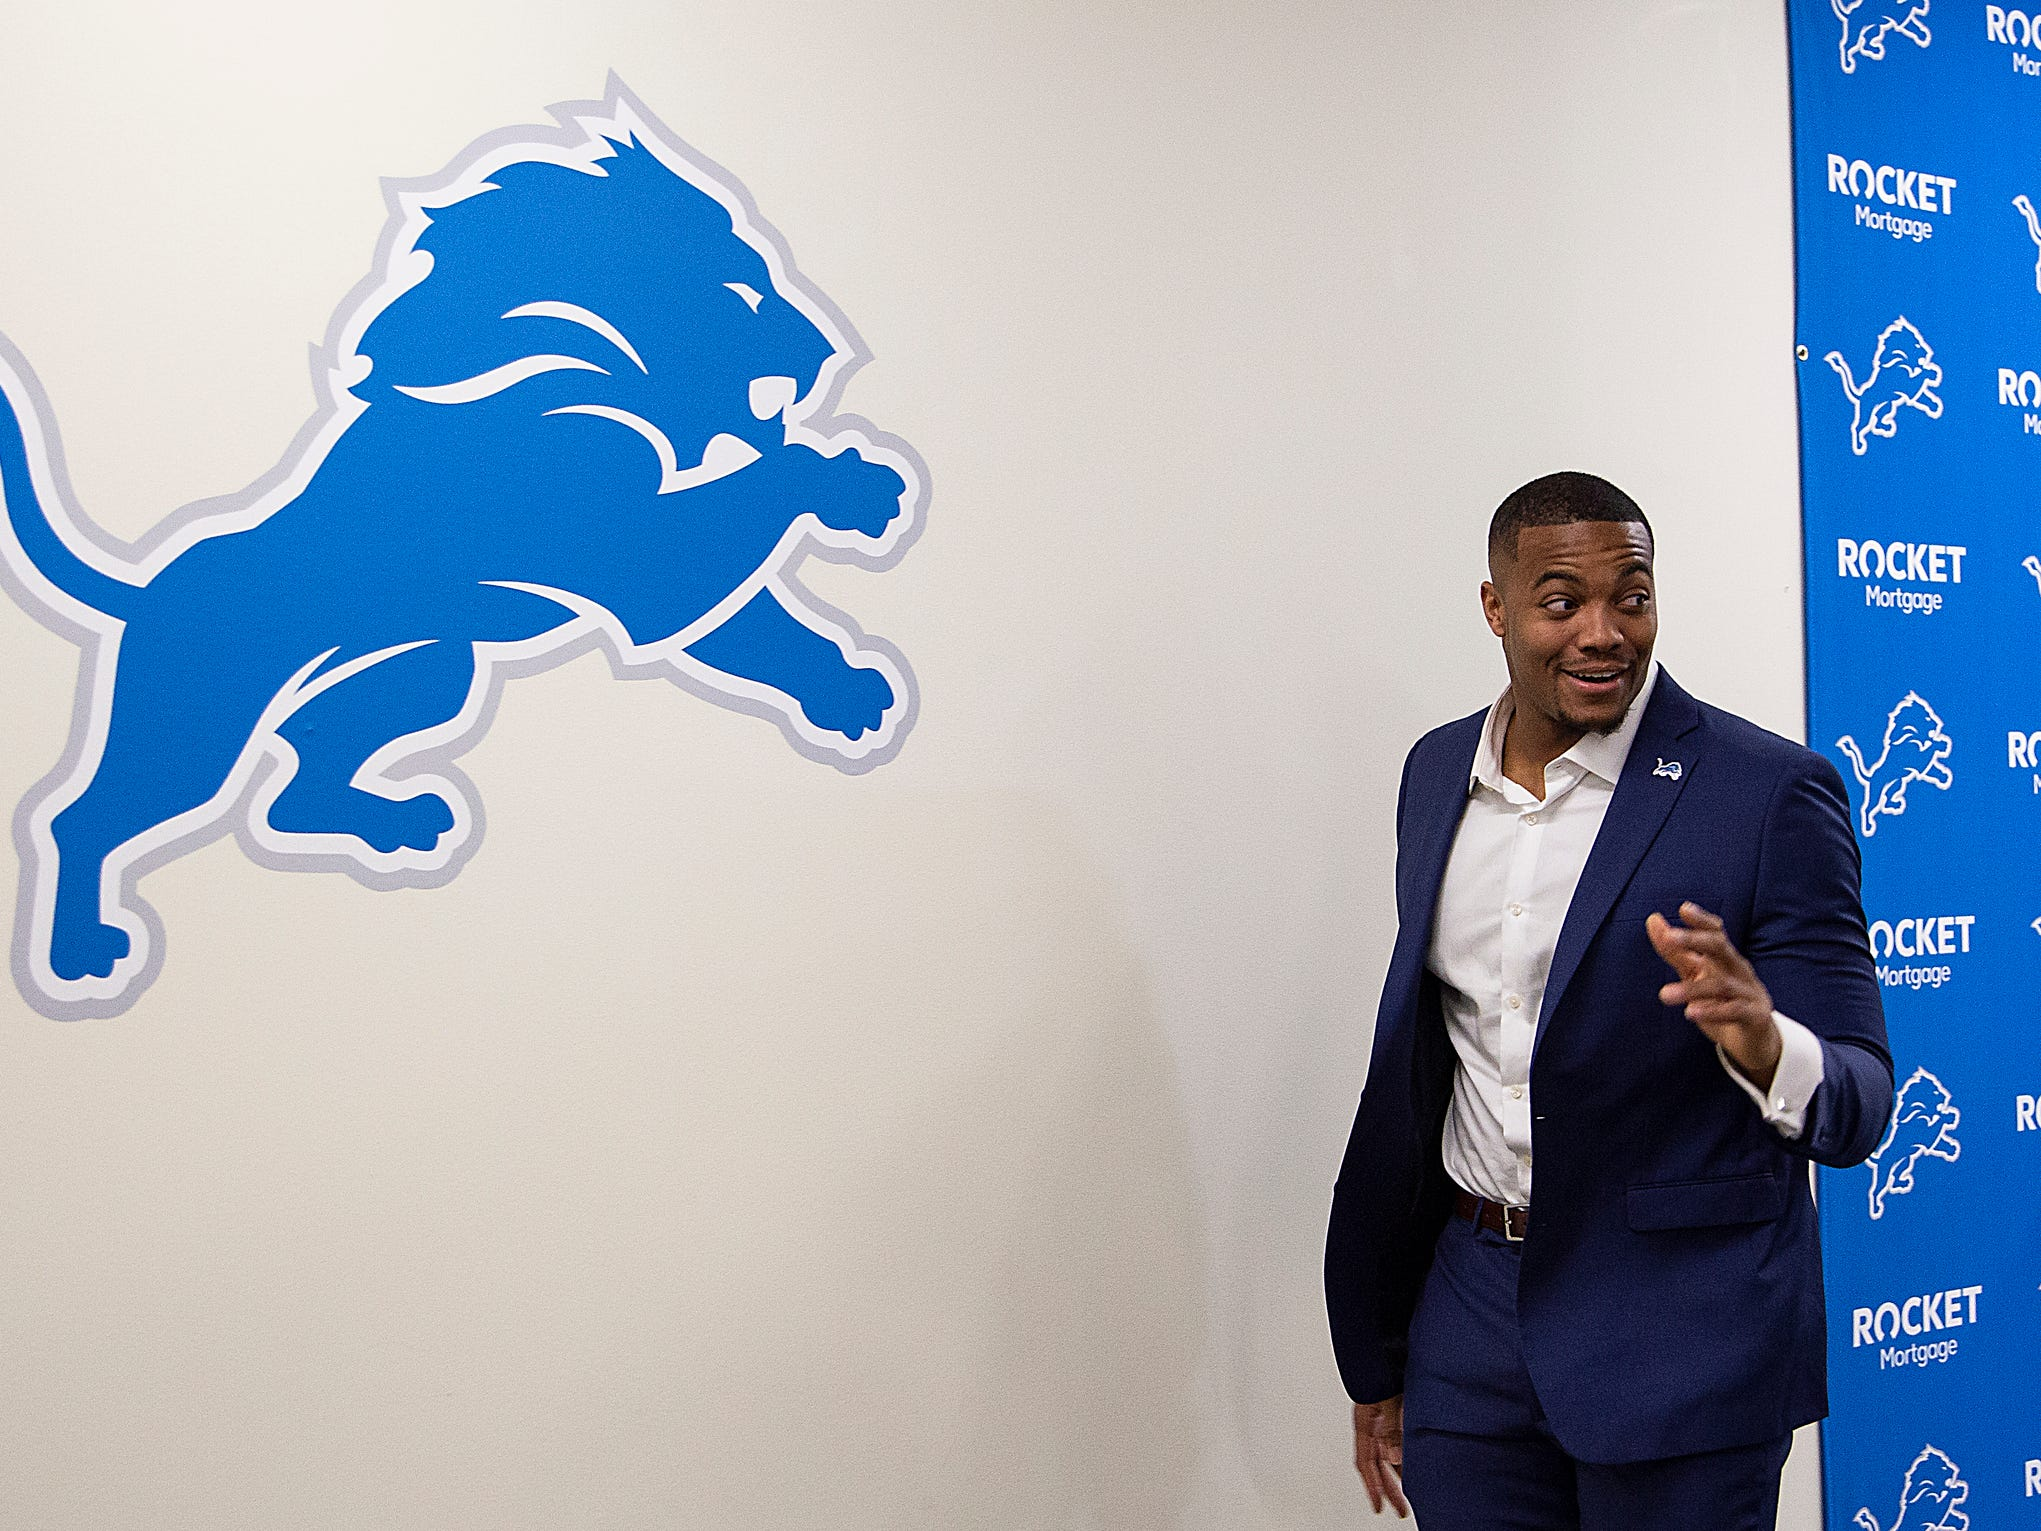 New Lions defensive end Trey Flowers waves to the media Thursday, March 14, 2019 after a news conference at the practice facility in Allen Park.